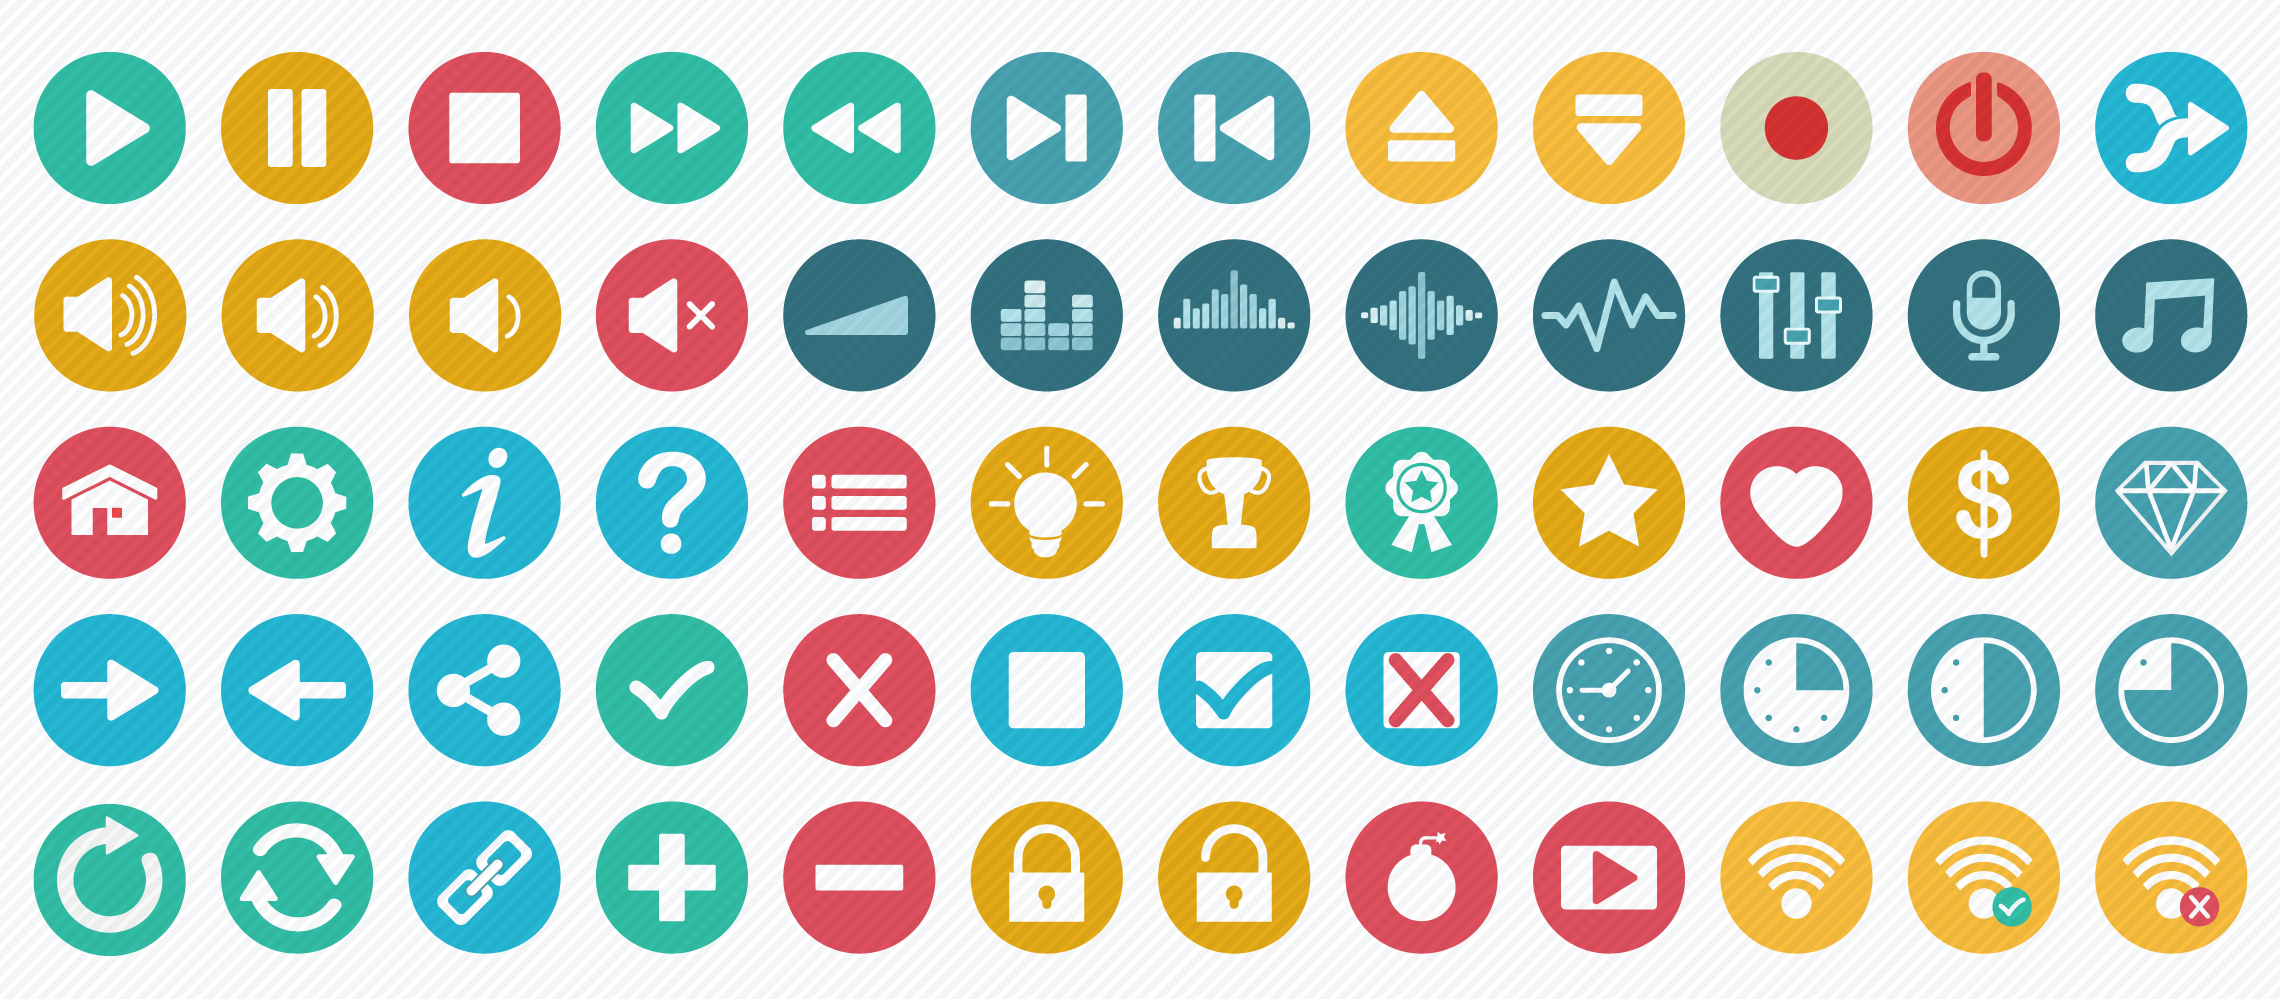 audio_video_game flat icons